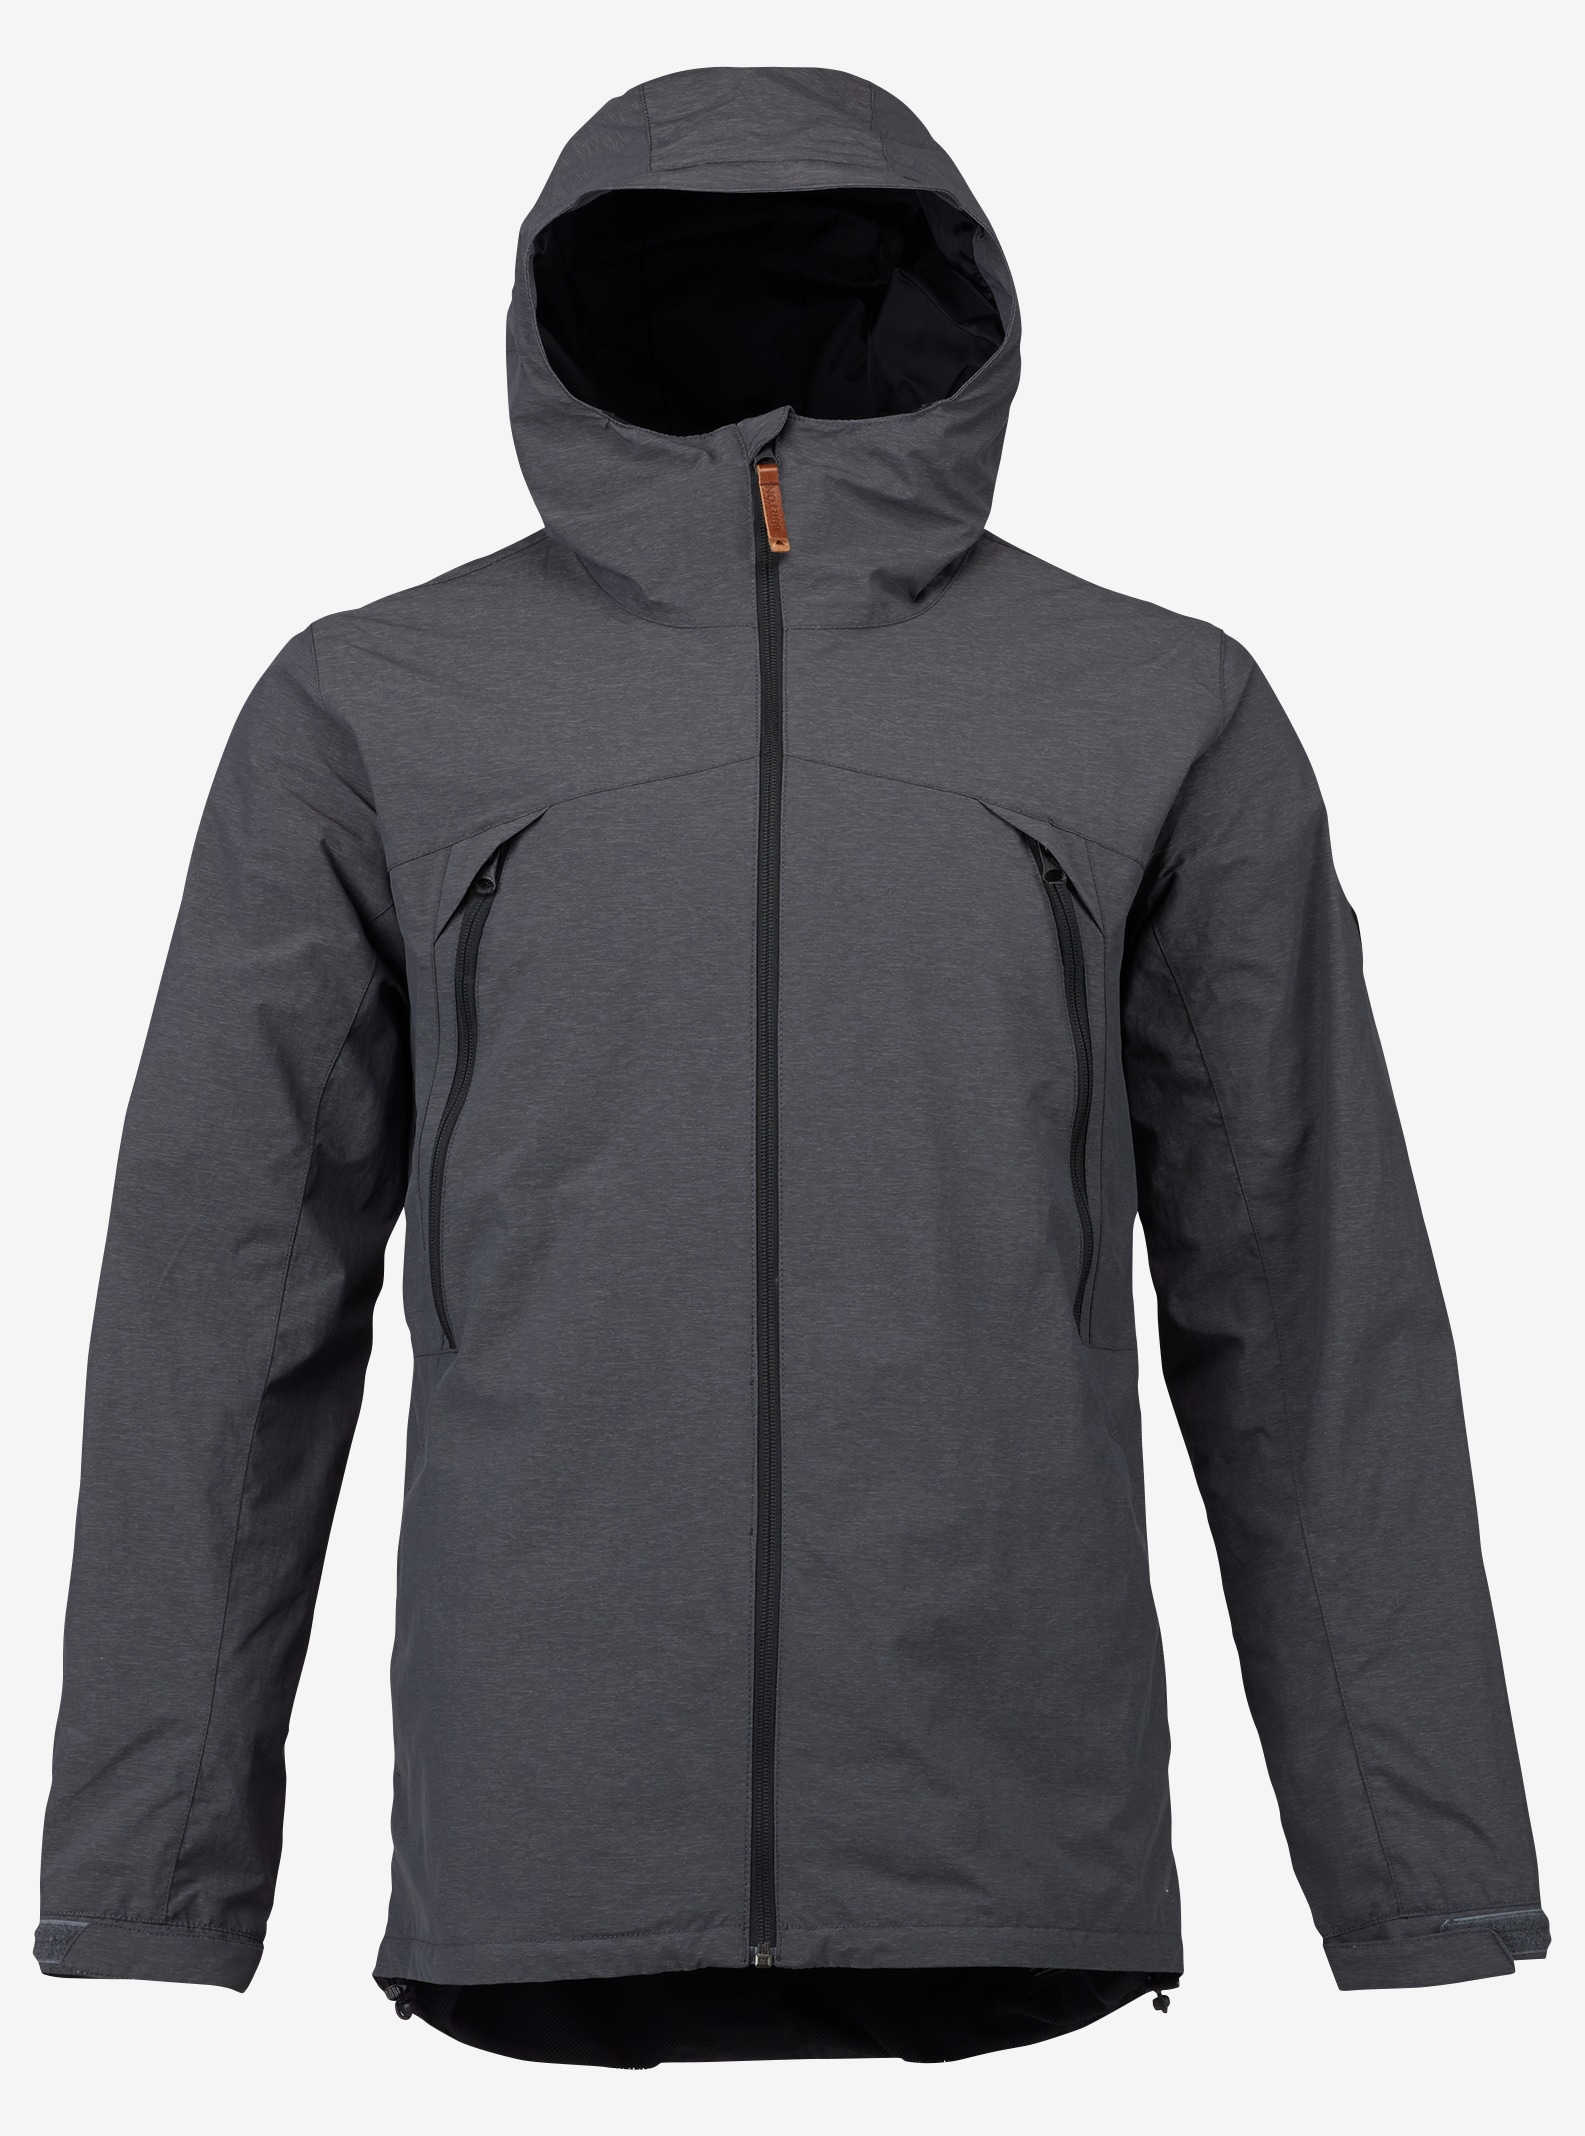 Men's Burton Intervale Jacket shown in Faded